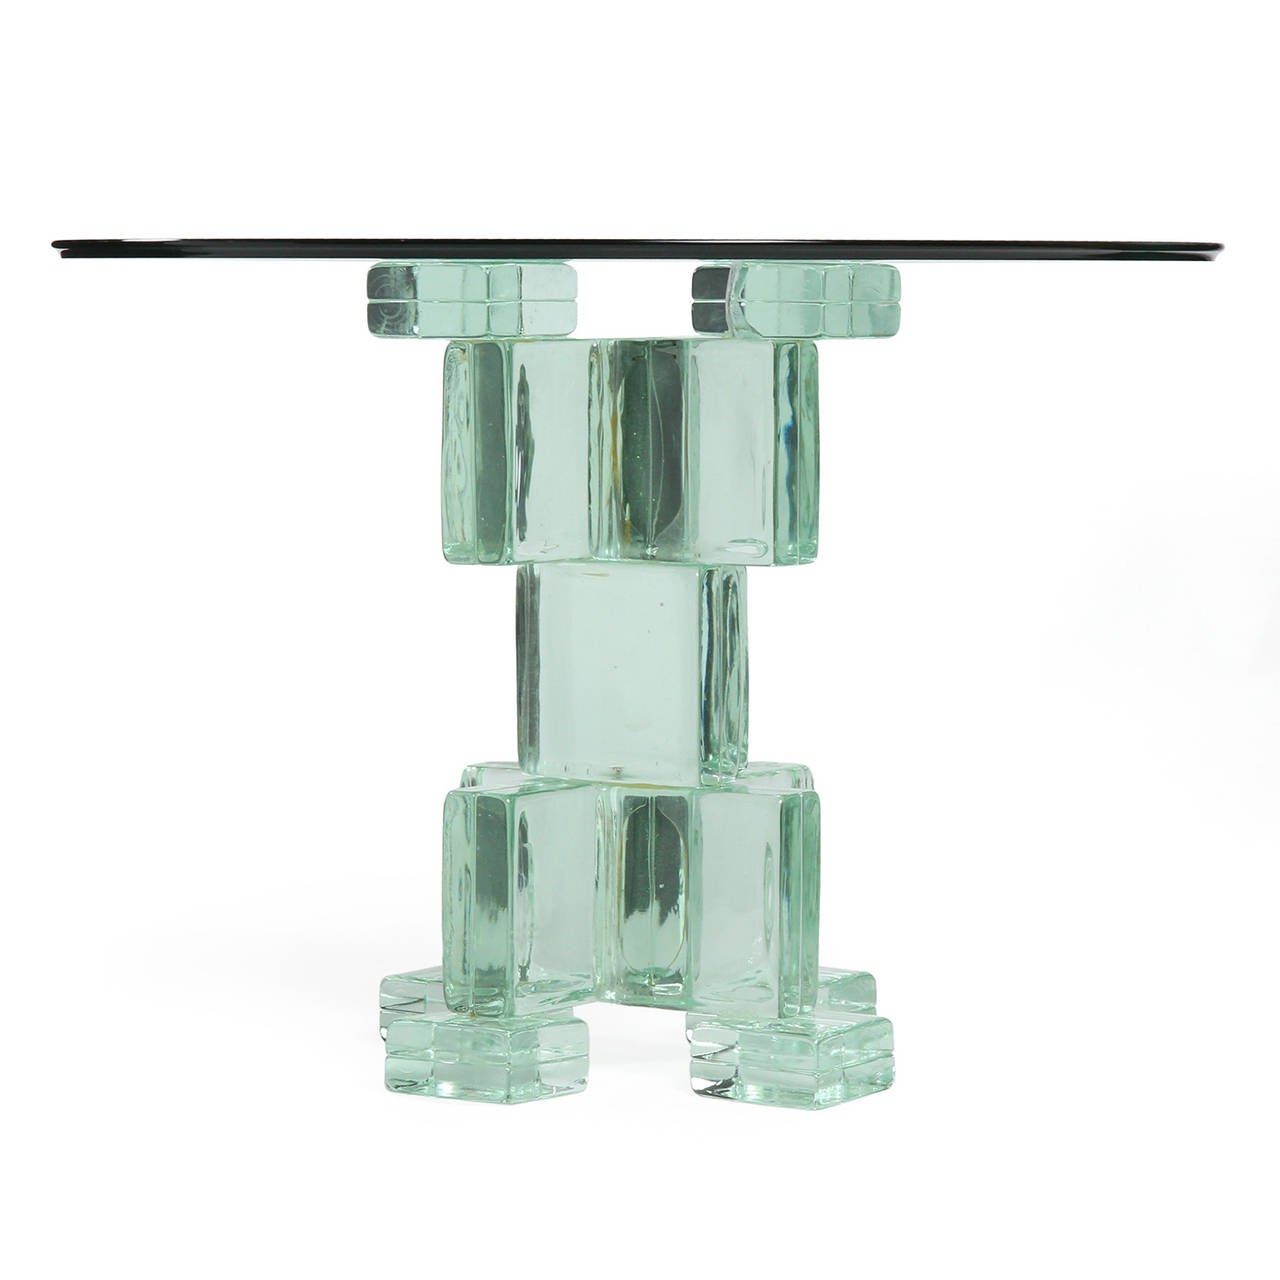 Glass Block Pedestal Table For Sale At 1stdibs